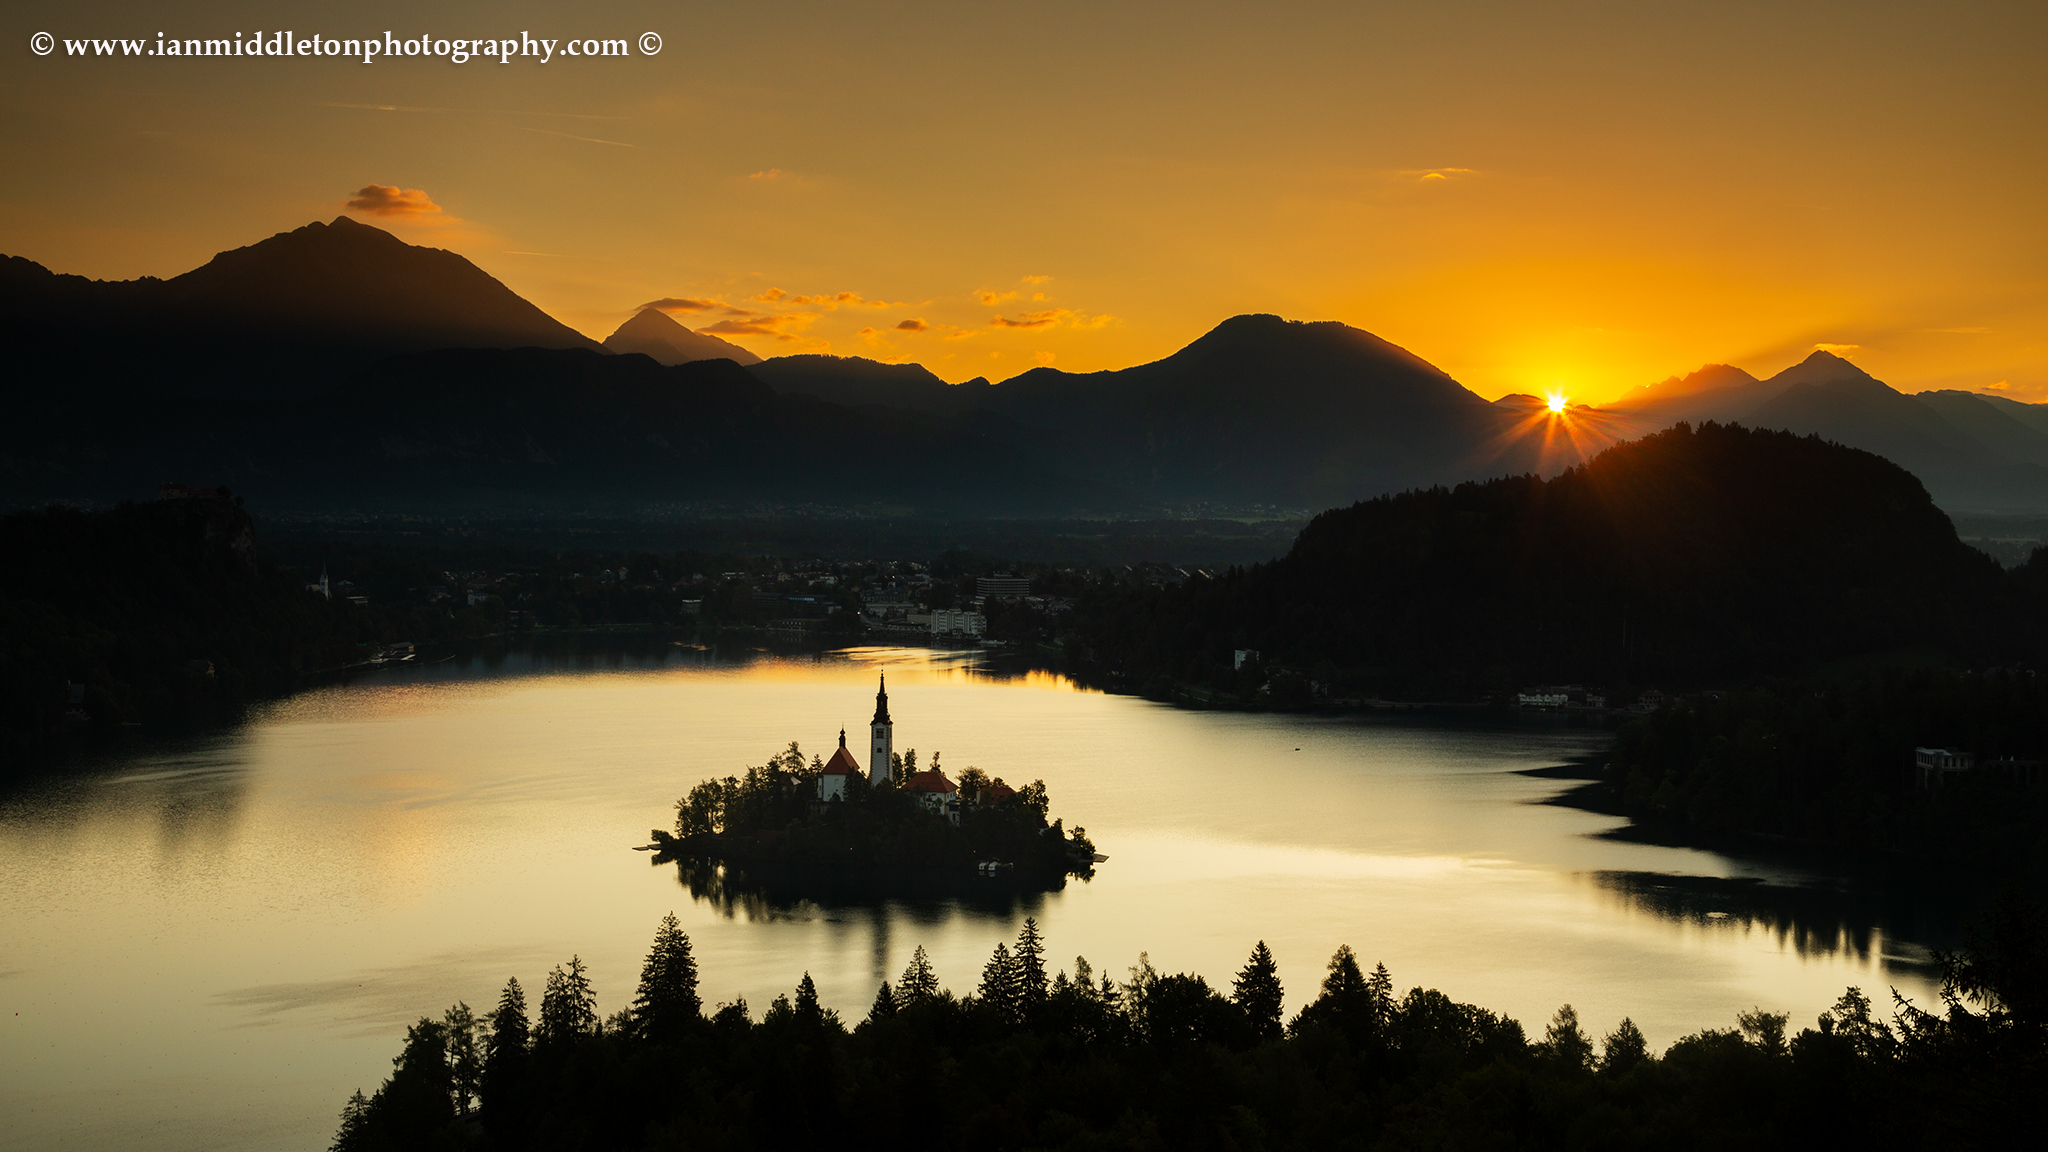 Sunrise view across Lake Bled to the island church and clifftop castle from Ojstrica as the run rises beside Storzic and Kocna mountains, Slovenia.